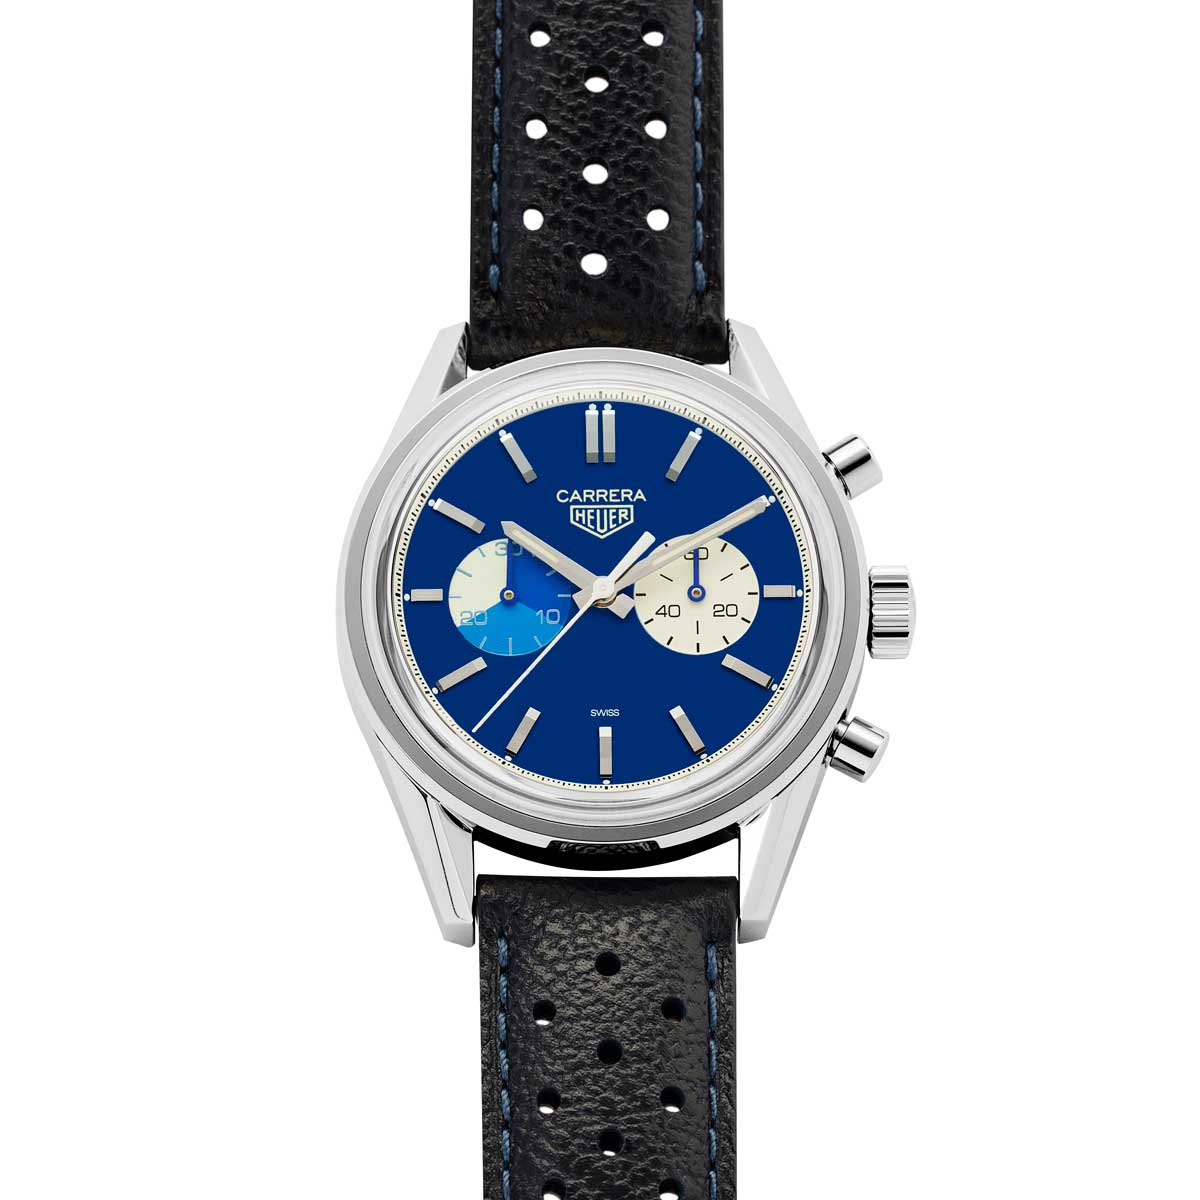 The Revolution x TAG Heuer timepiece on its original blue leather strap